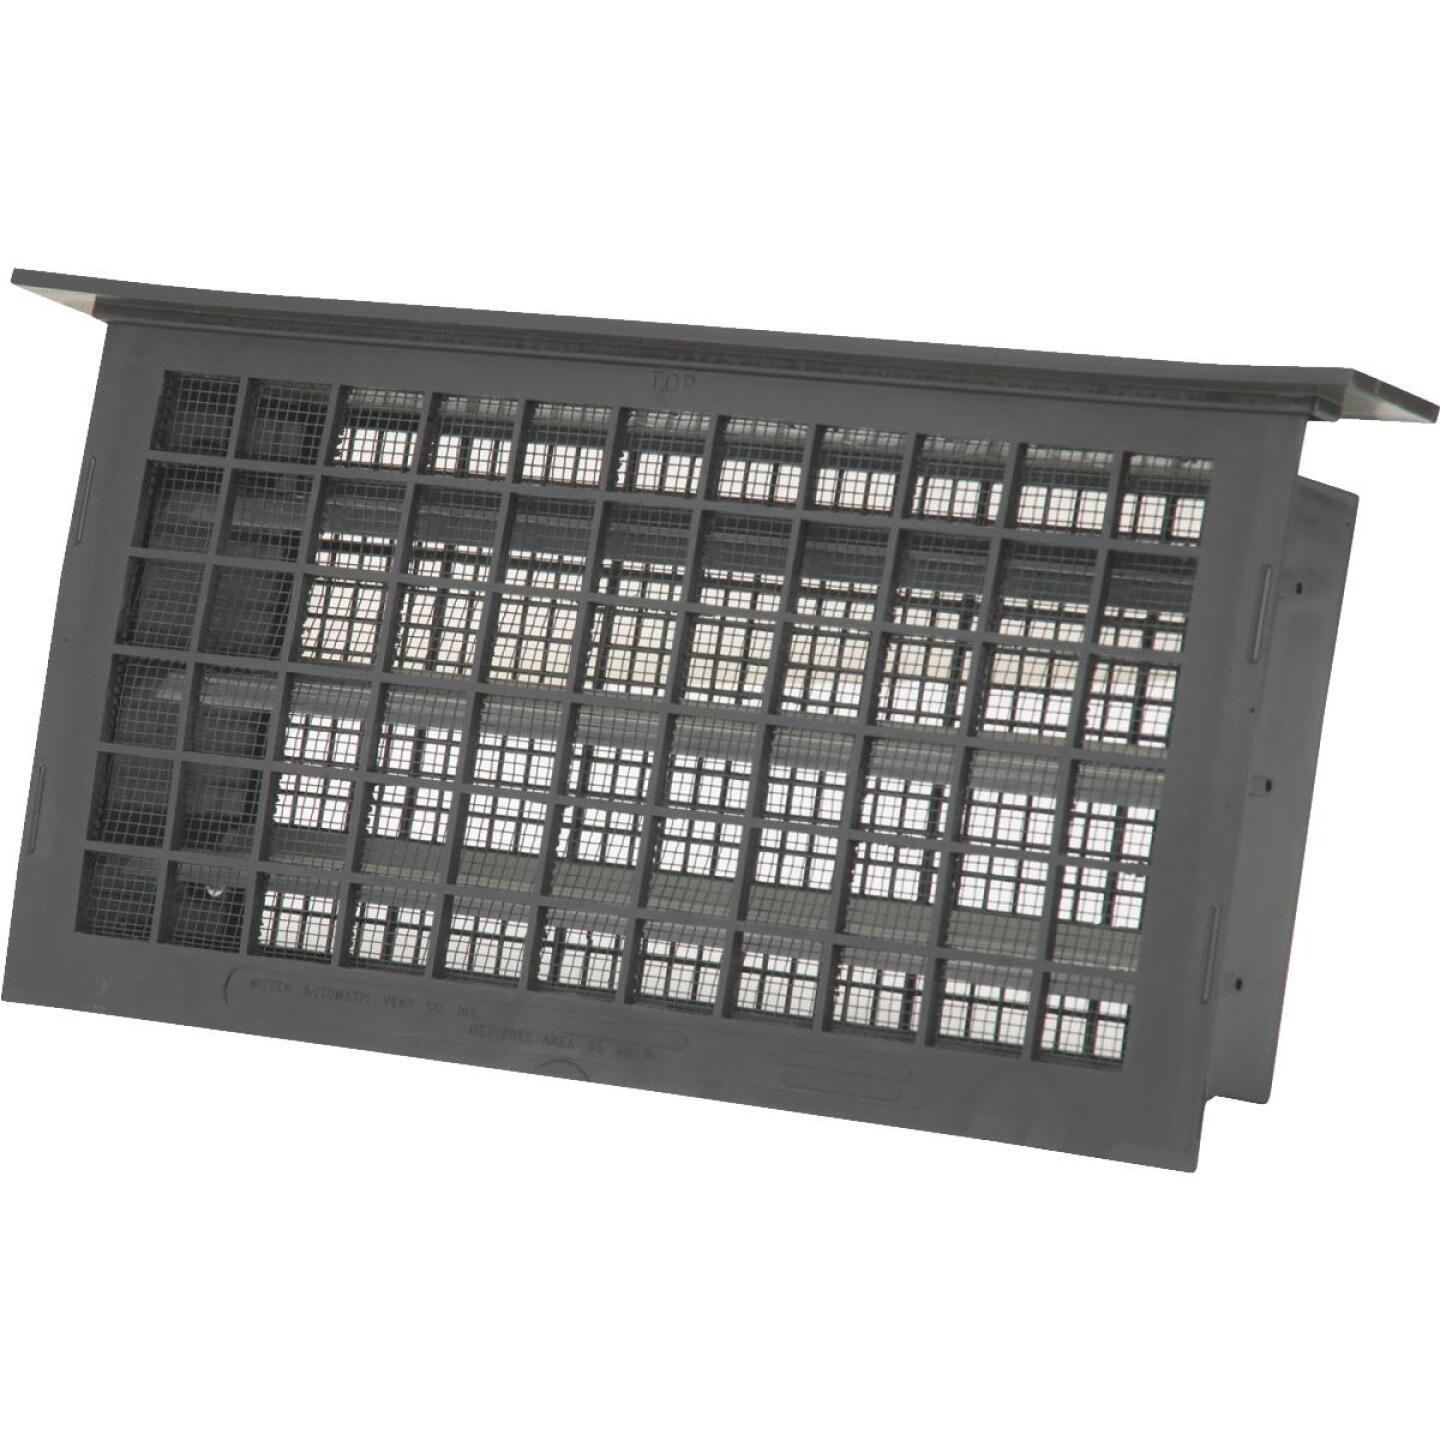 Witten 8 In. x 16 In. Black Automatic Foundation Ventilator with Lentil Image 1